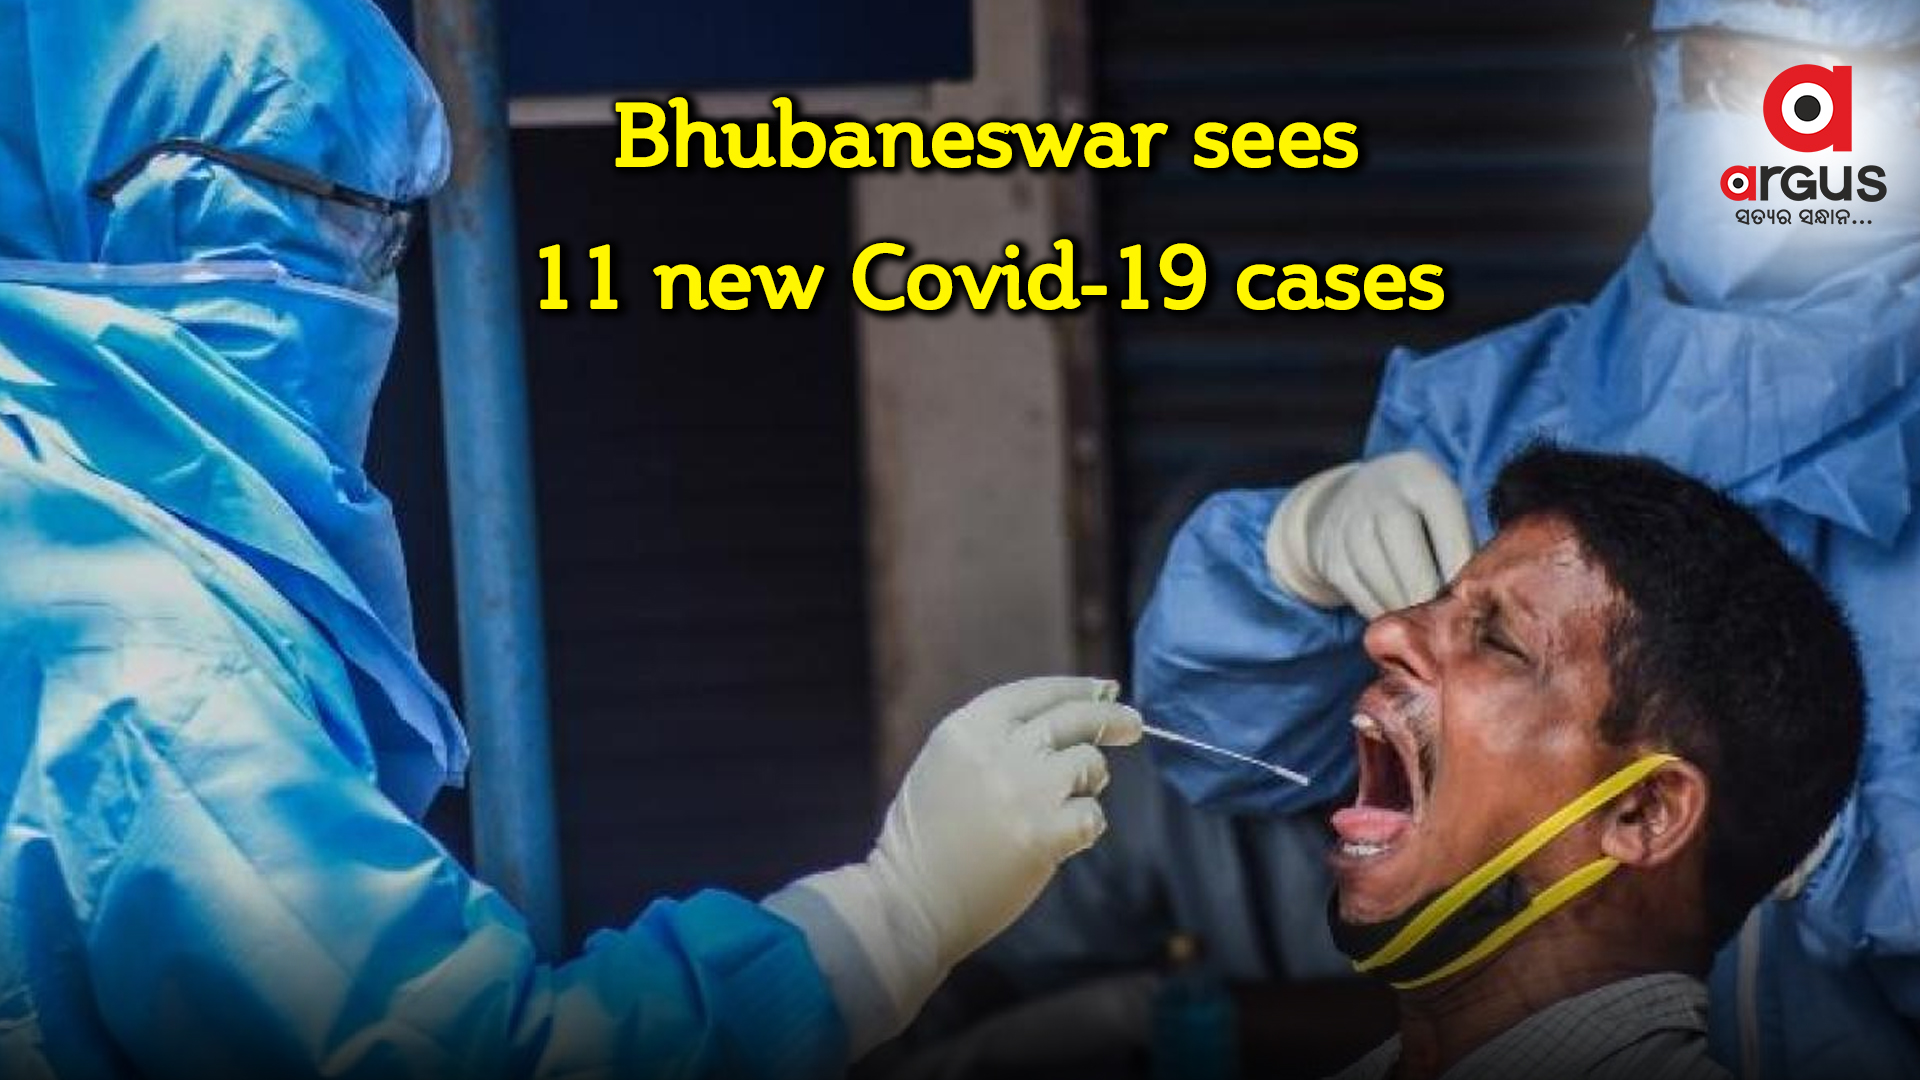 Bhubaneswar reports 11 new Covid-19 cases, 19 recoveries